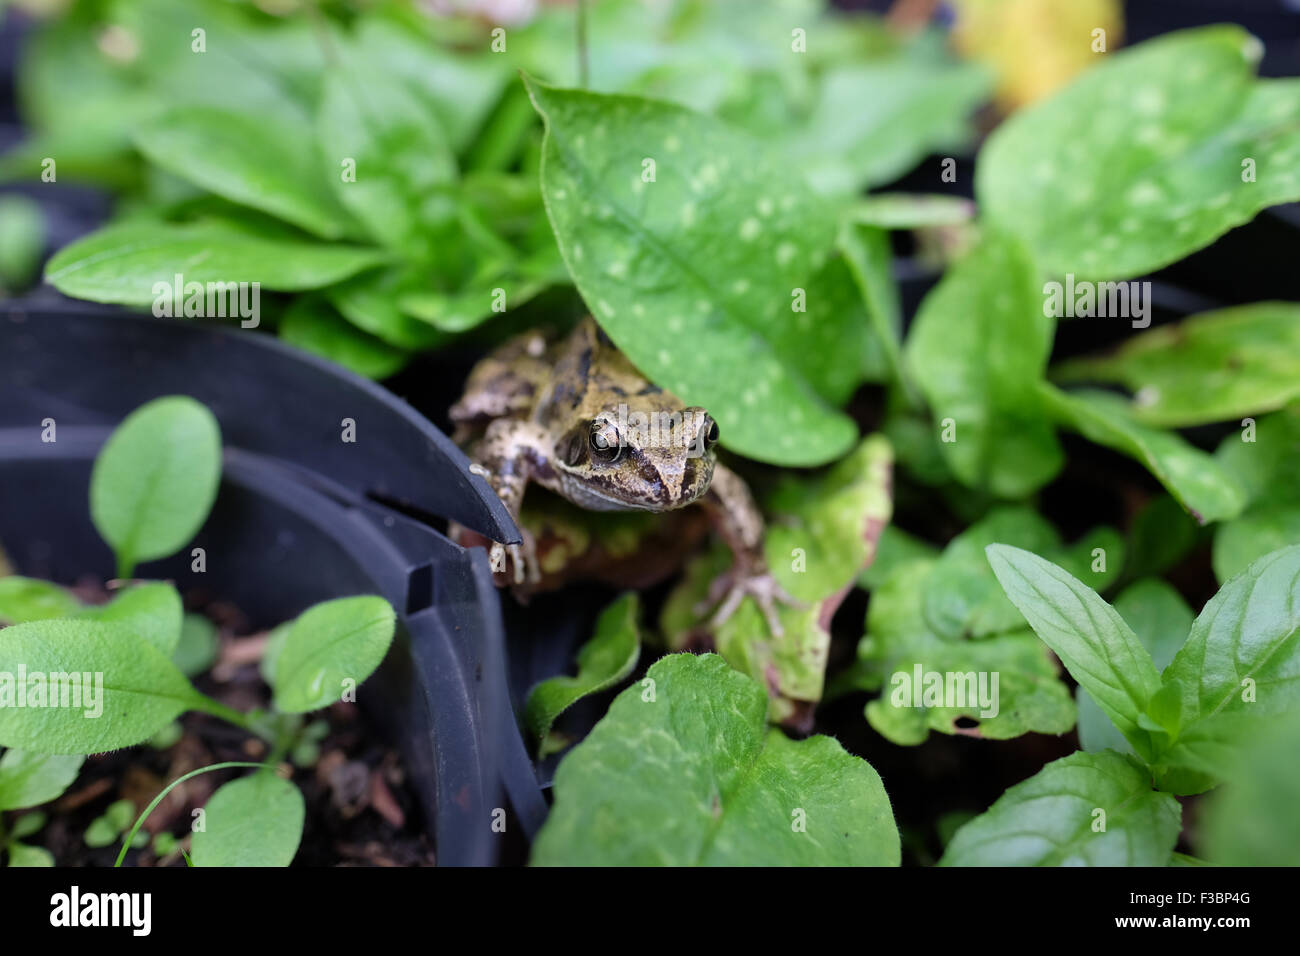 frog in a garden - Stock Image